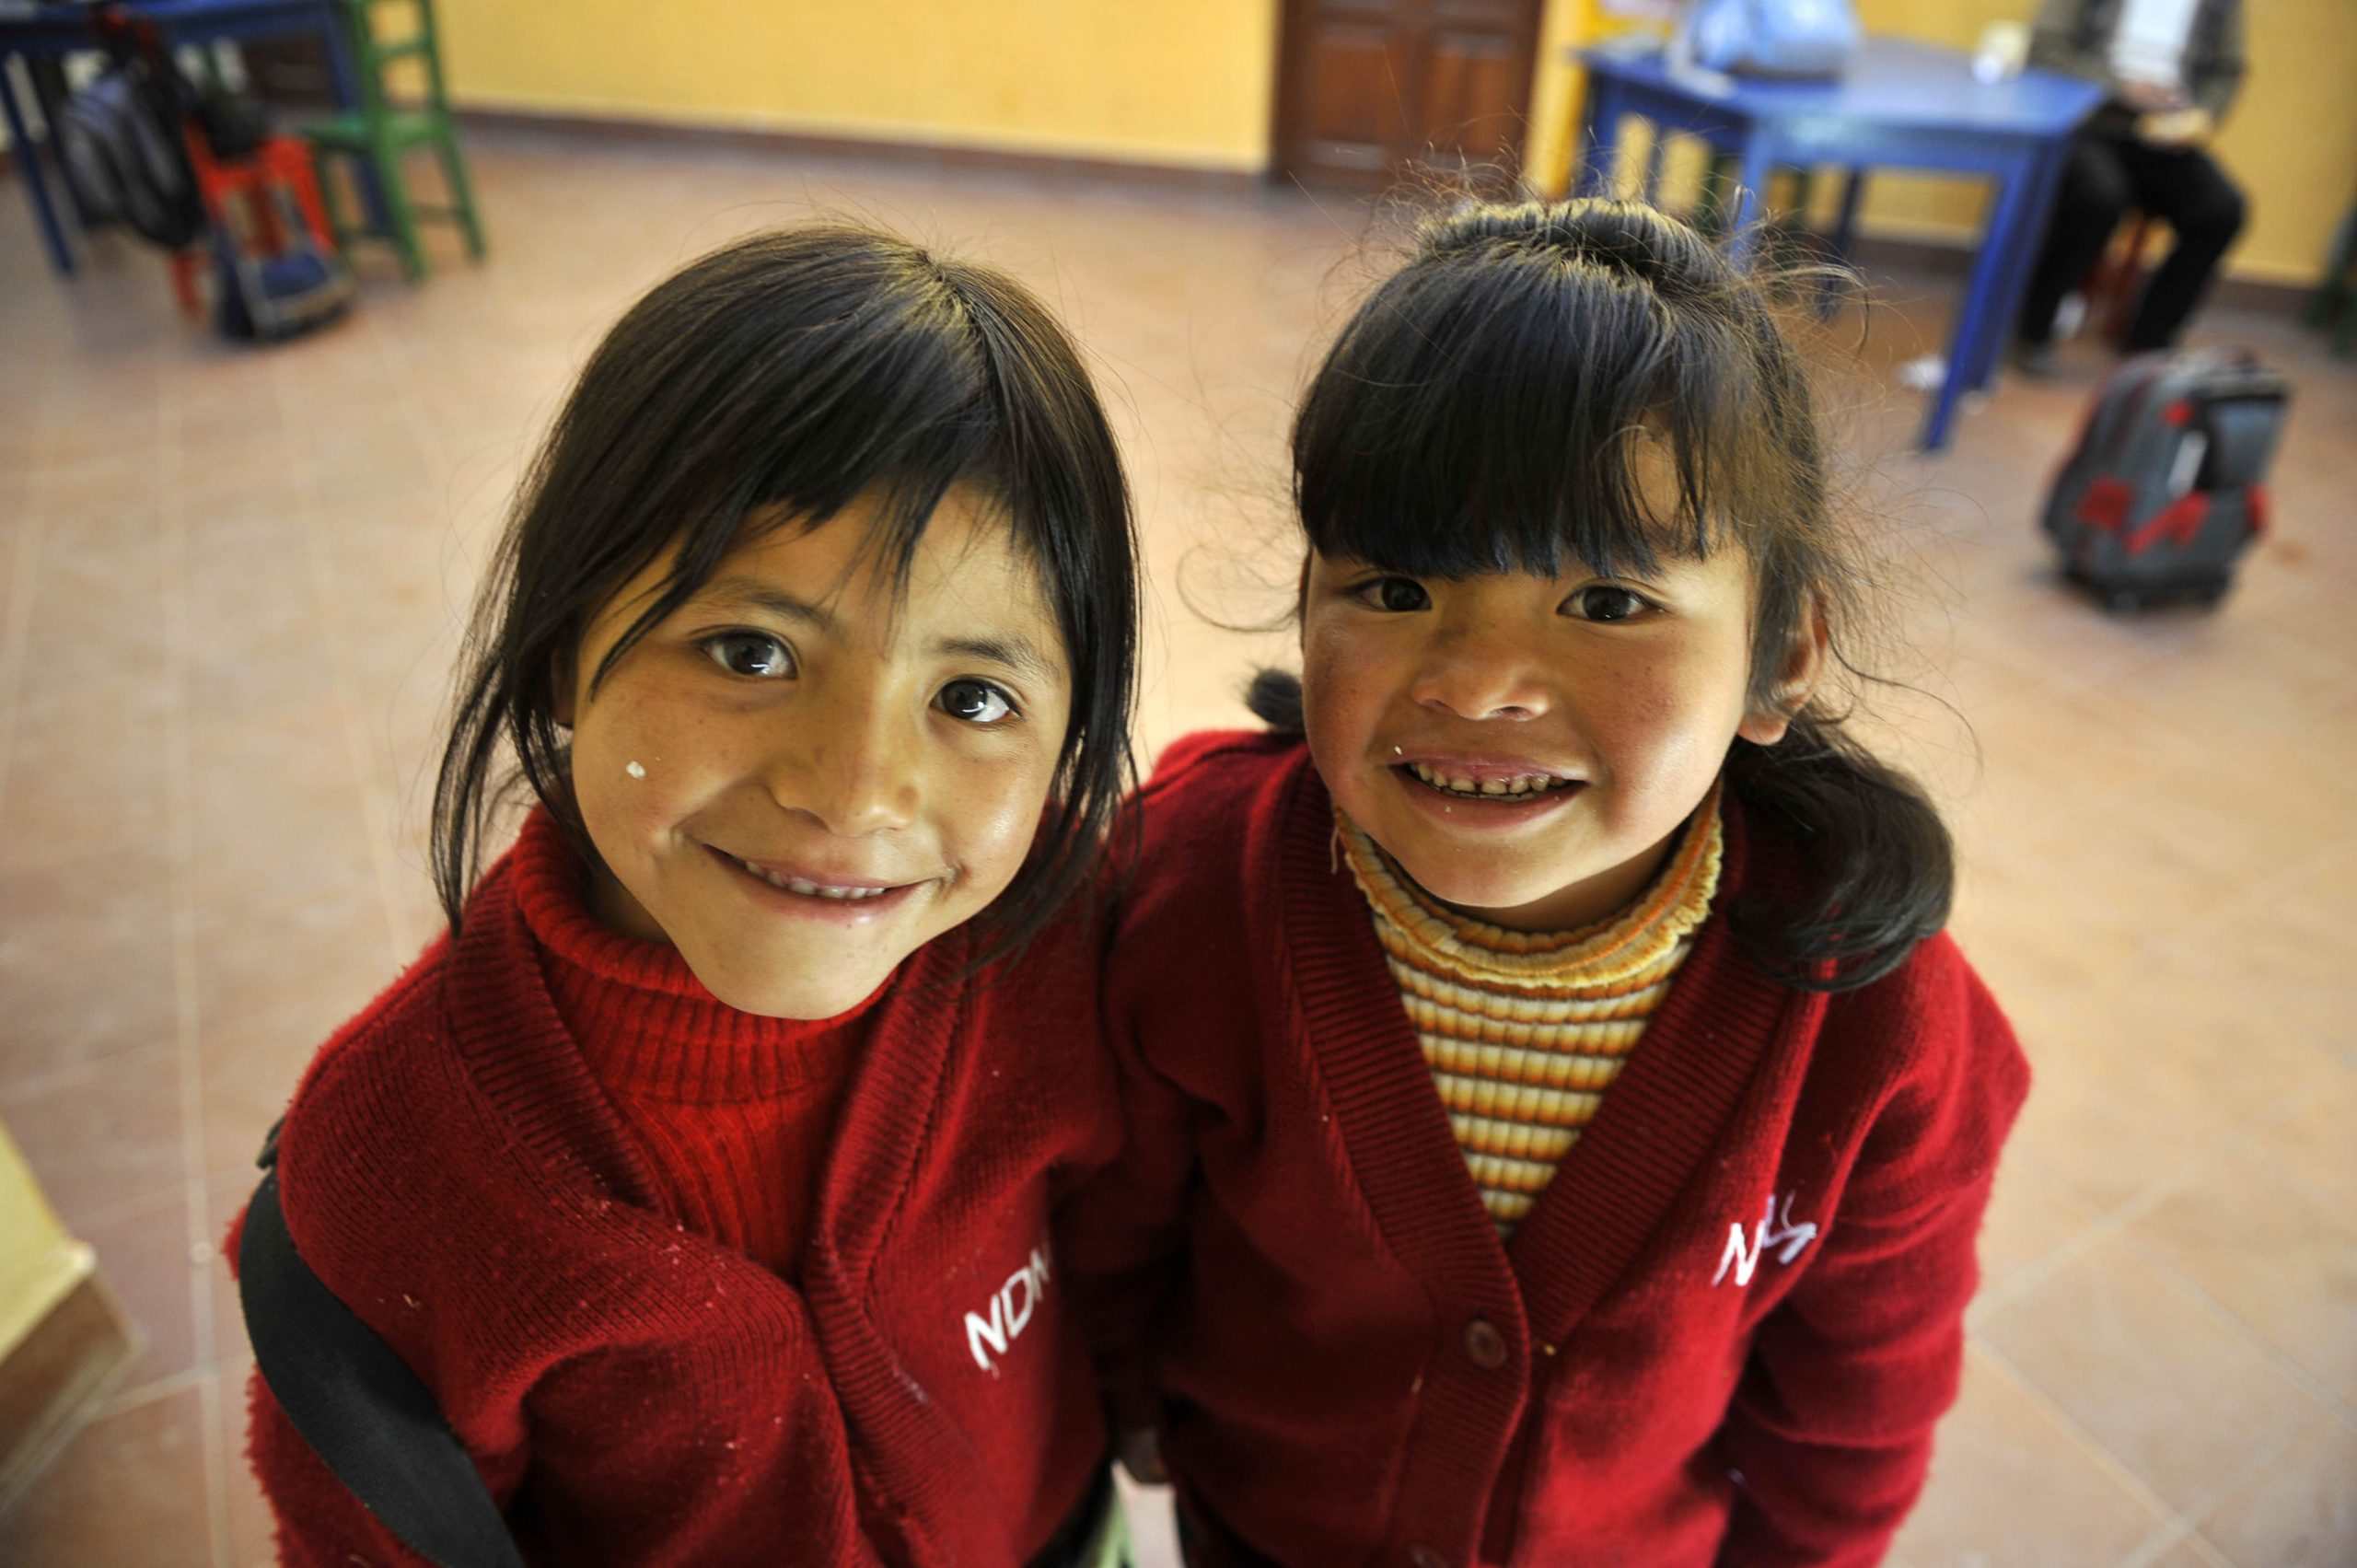 5 facts about child labour in Latin America and the Caribbean